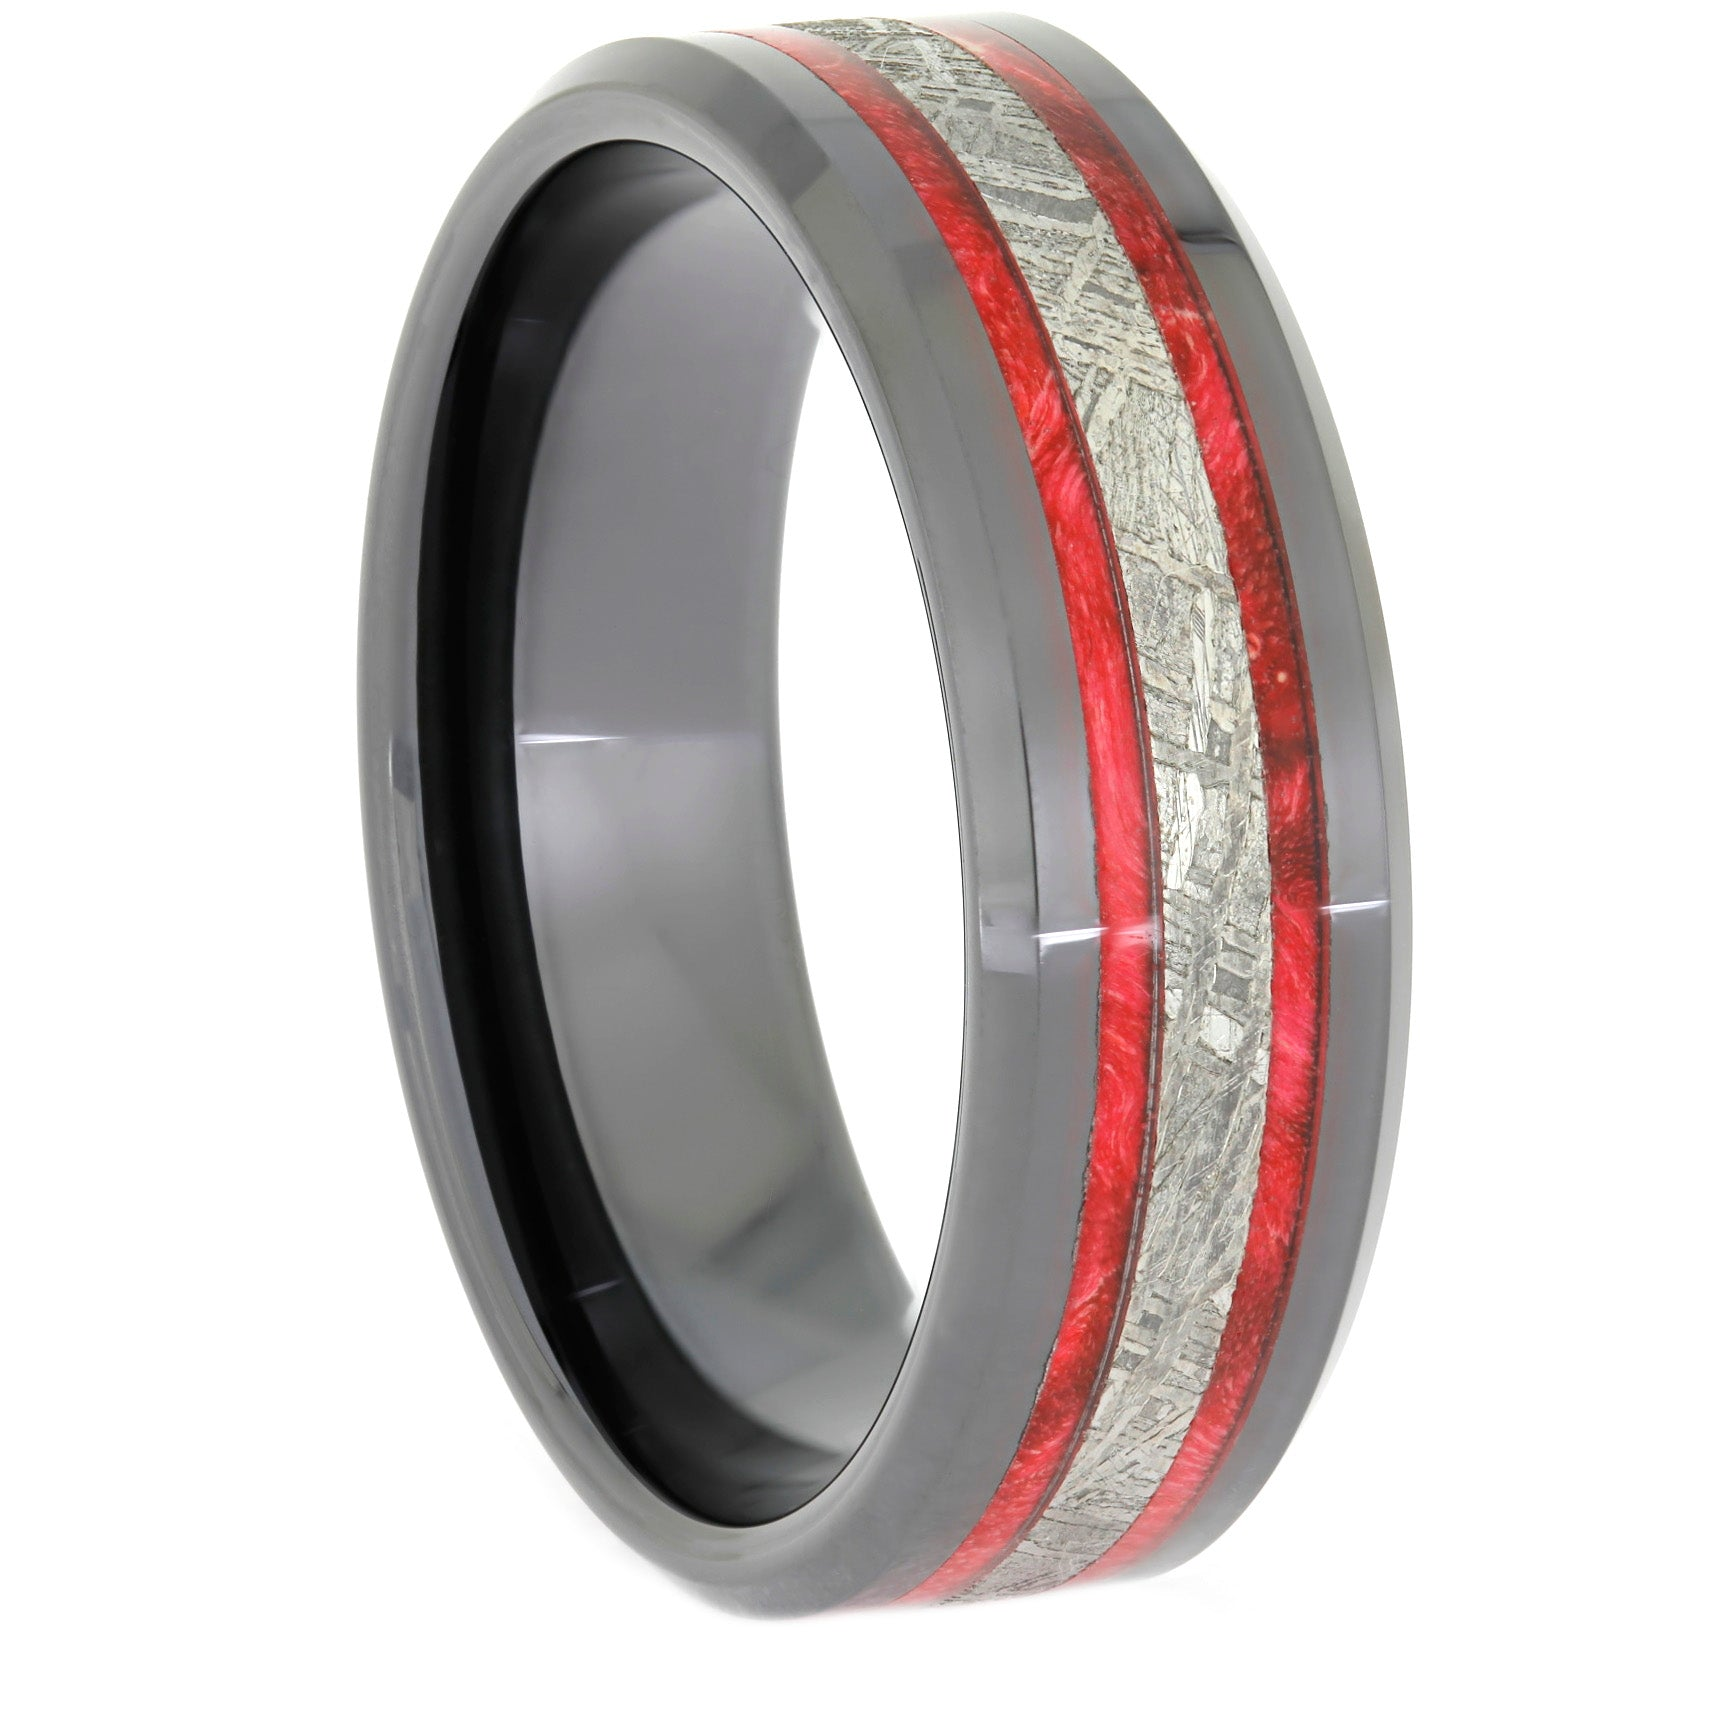 Black Ceramic Wedding Band, Red Box Elder and Meteorite Ring, Size 13.25-RS10511 - Jewelry by Johan